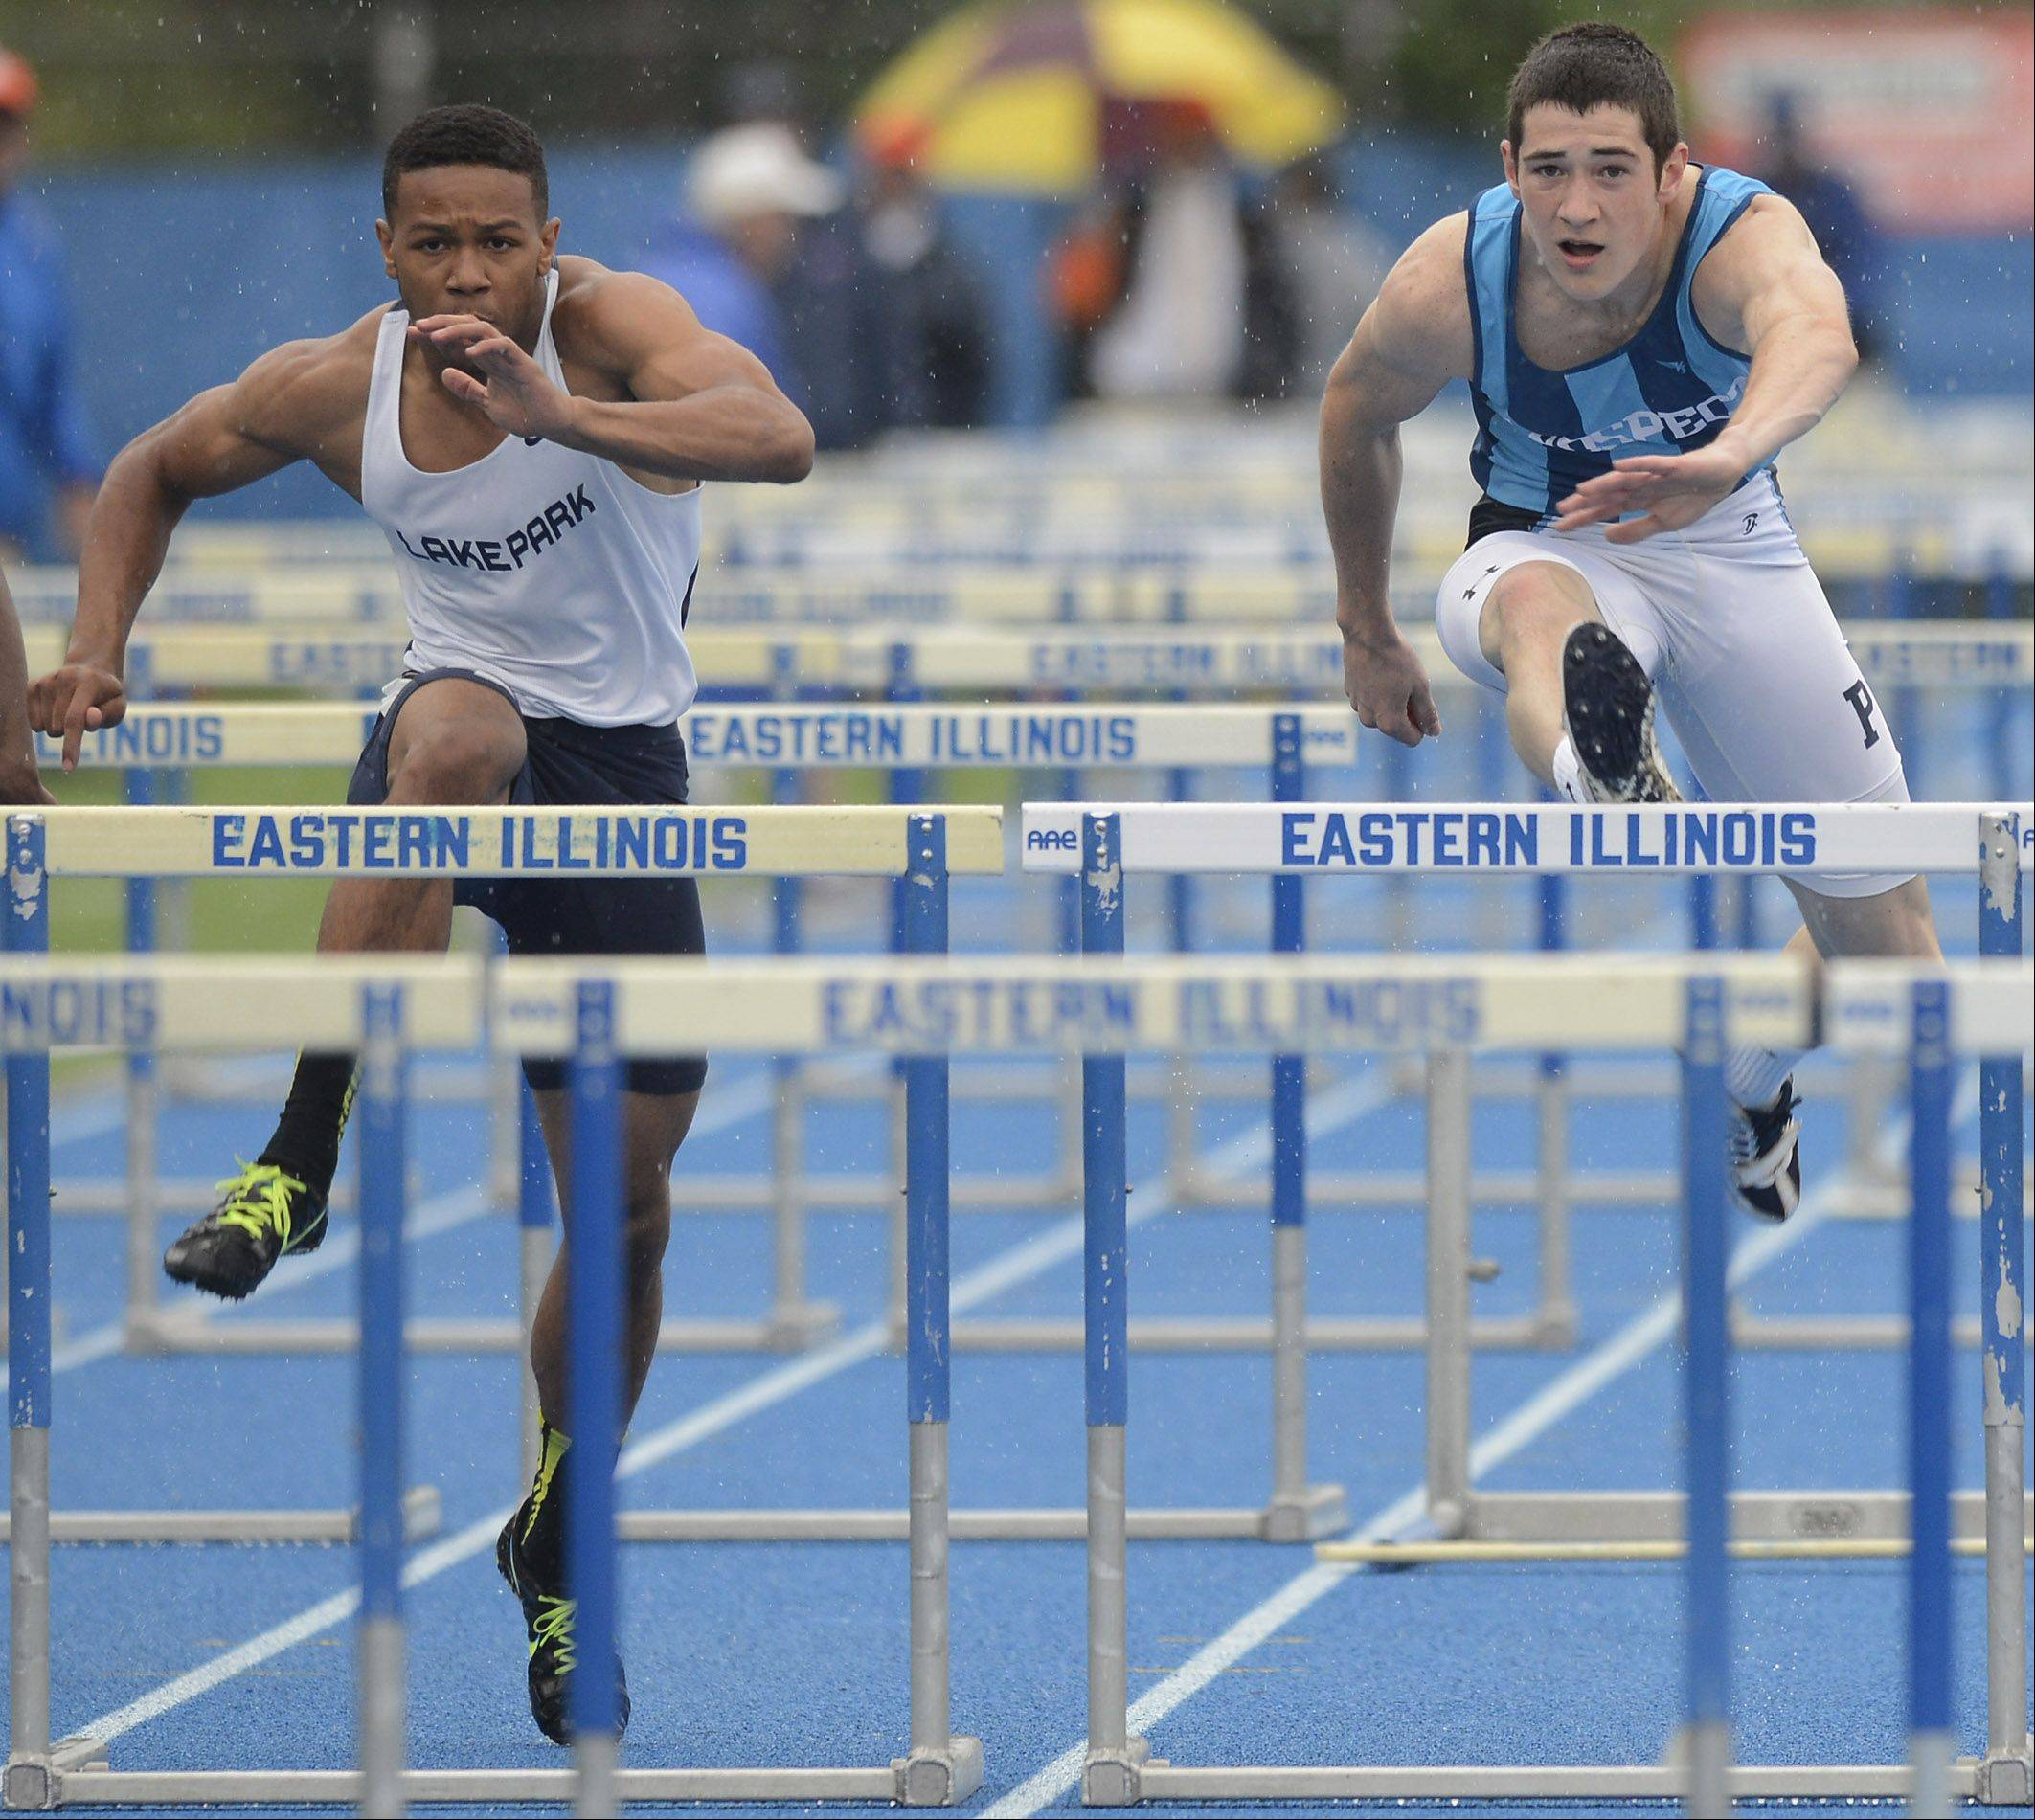 JOE LEWNARD/jlewnard@dailyherald.comLake Park's Antonio Shenault, left, and Prospect's Dave Kendziera compete in the Class 3A 110-meter high hurdles during the boys state track finals in Charleston Saturday.